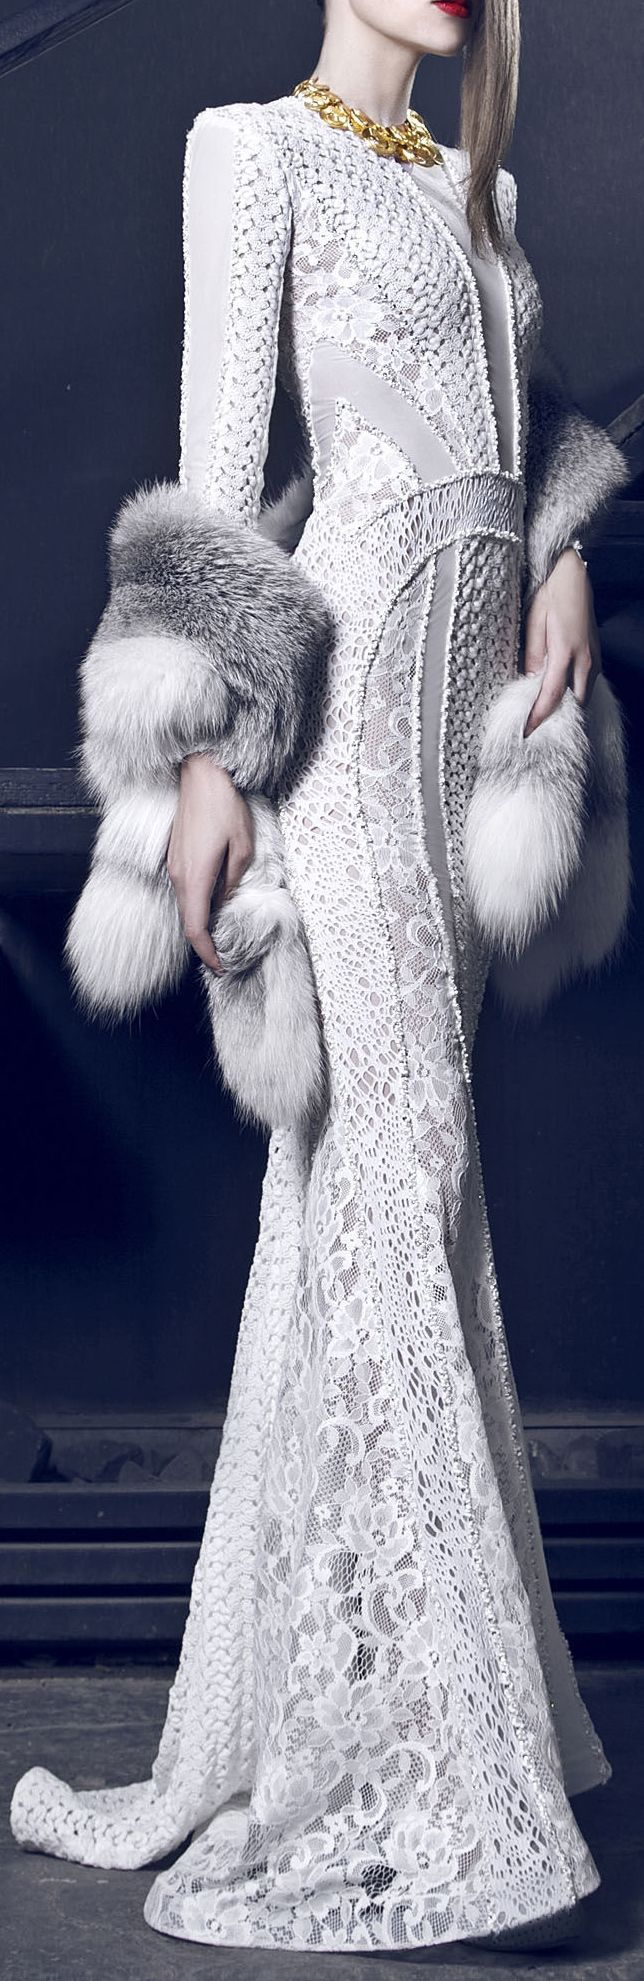 Nicolas Jebran Couture Fall/Winter 2014-2015